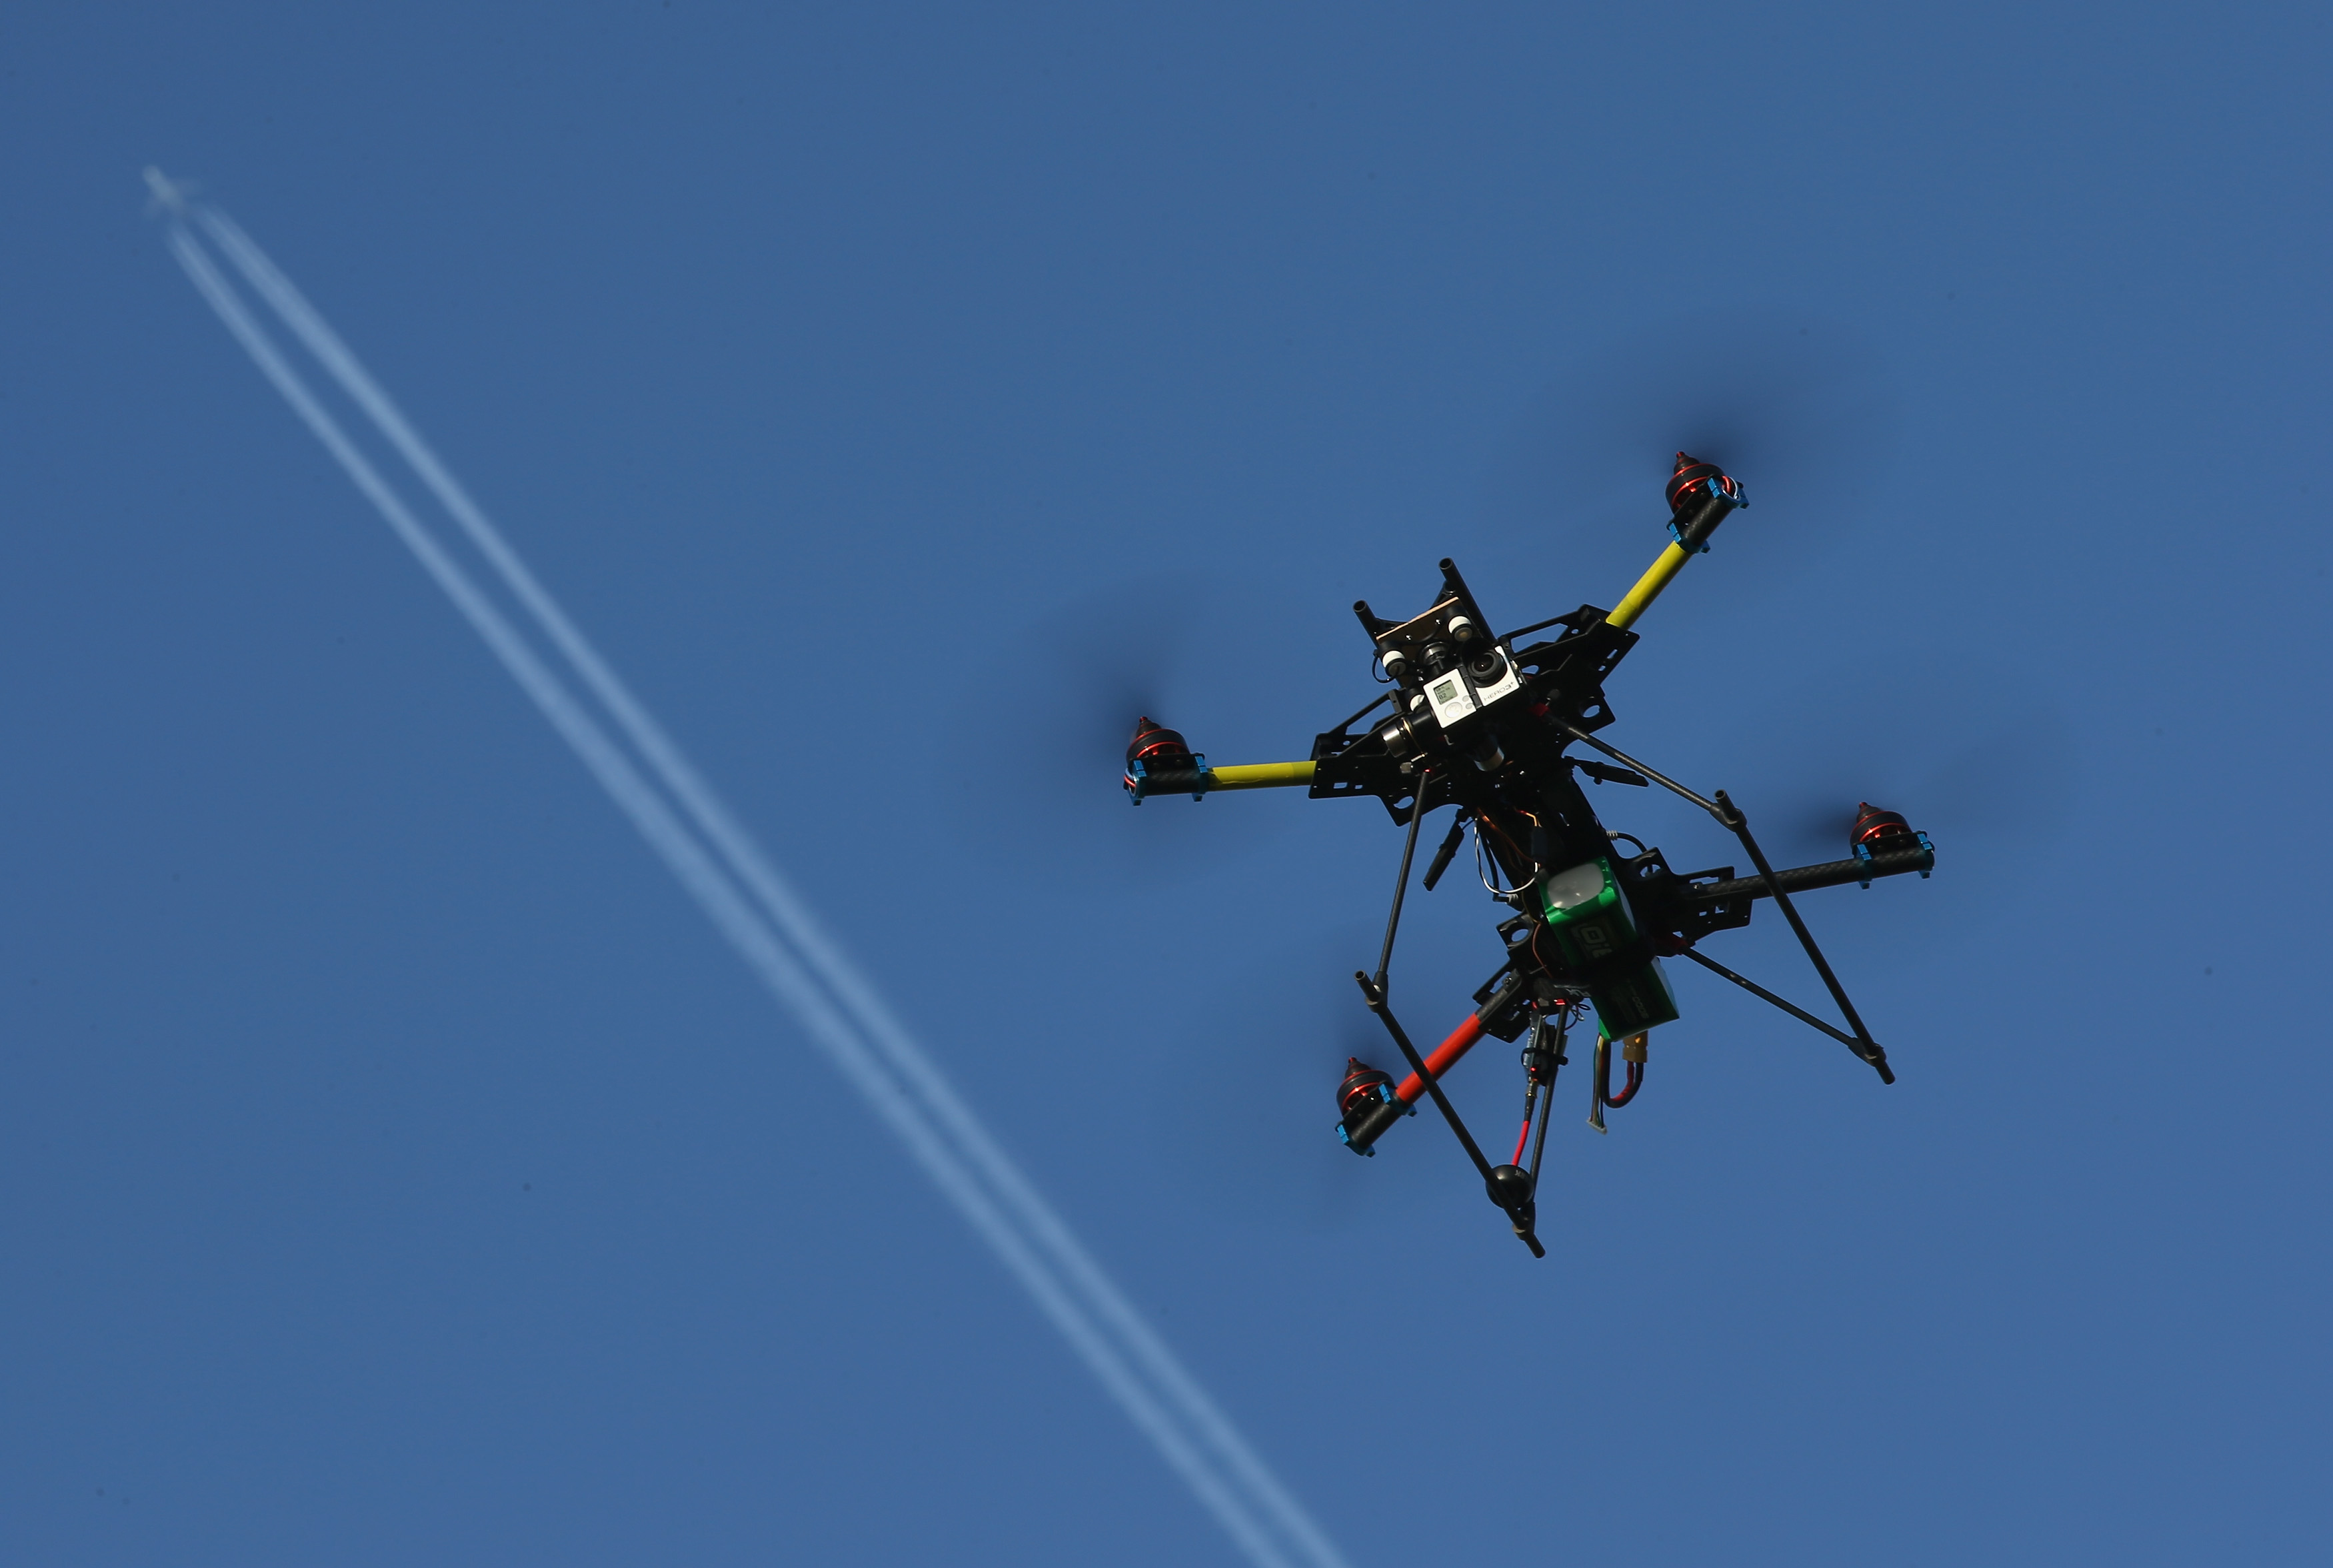 A commercial passenger plane flies overhead as a multirotor quadcopter drone used for aerial photography flies on June 7, 2011 near Zeestow, Germany.  (Sean Gallup--Getty Images)